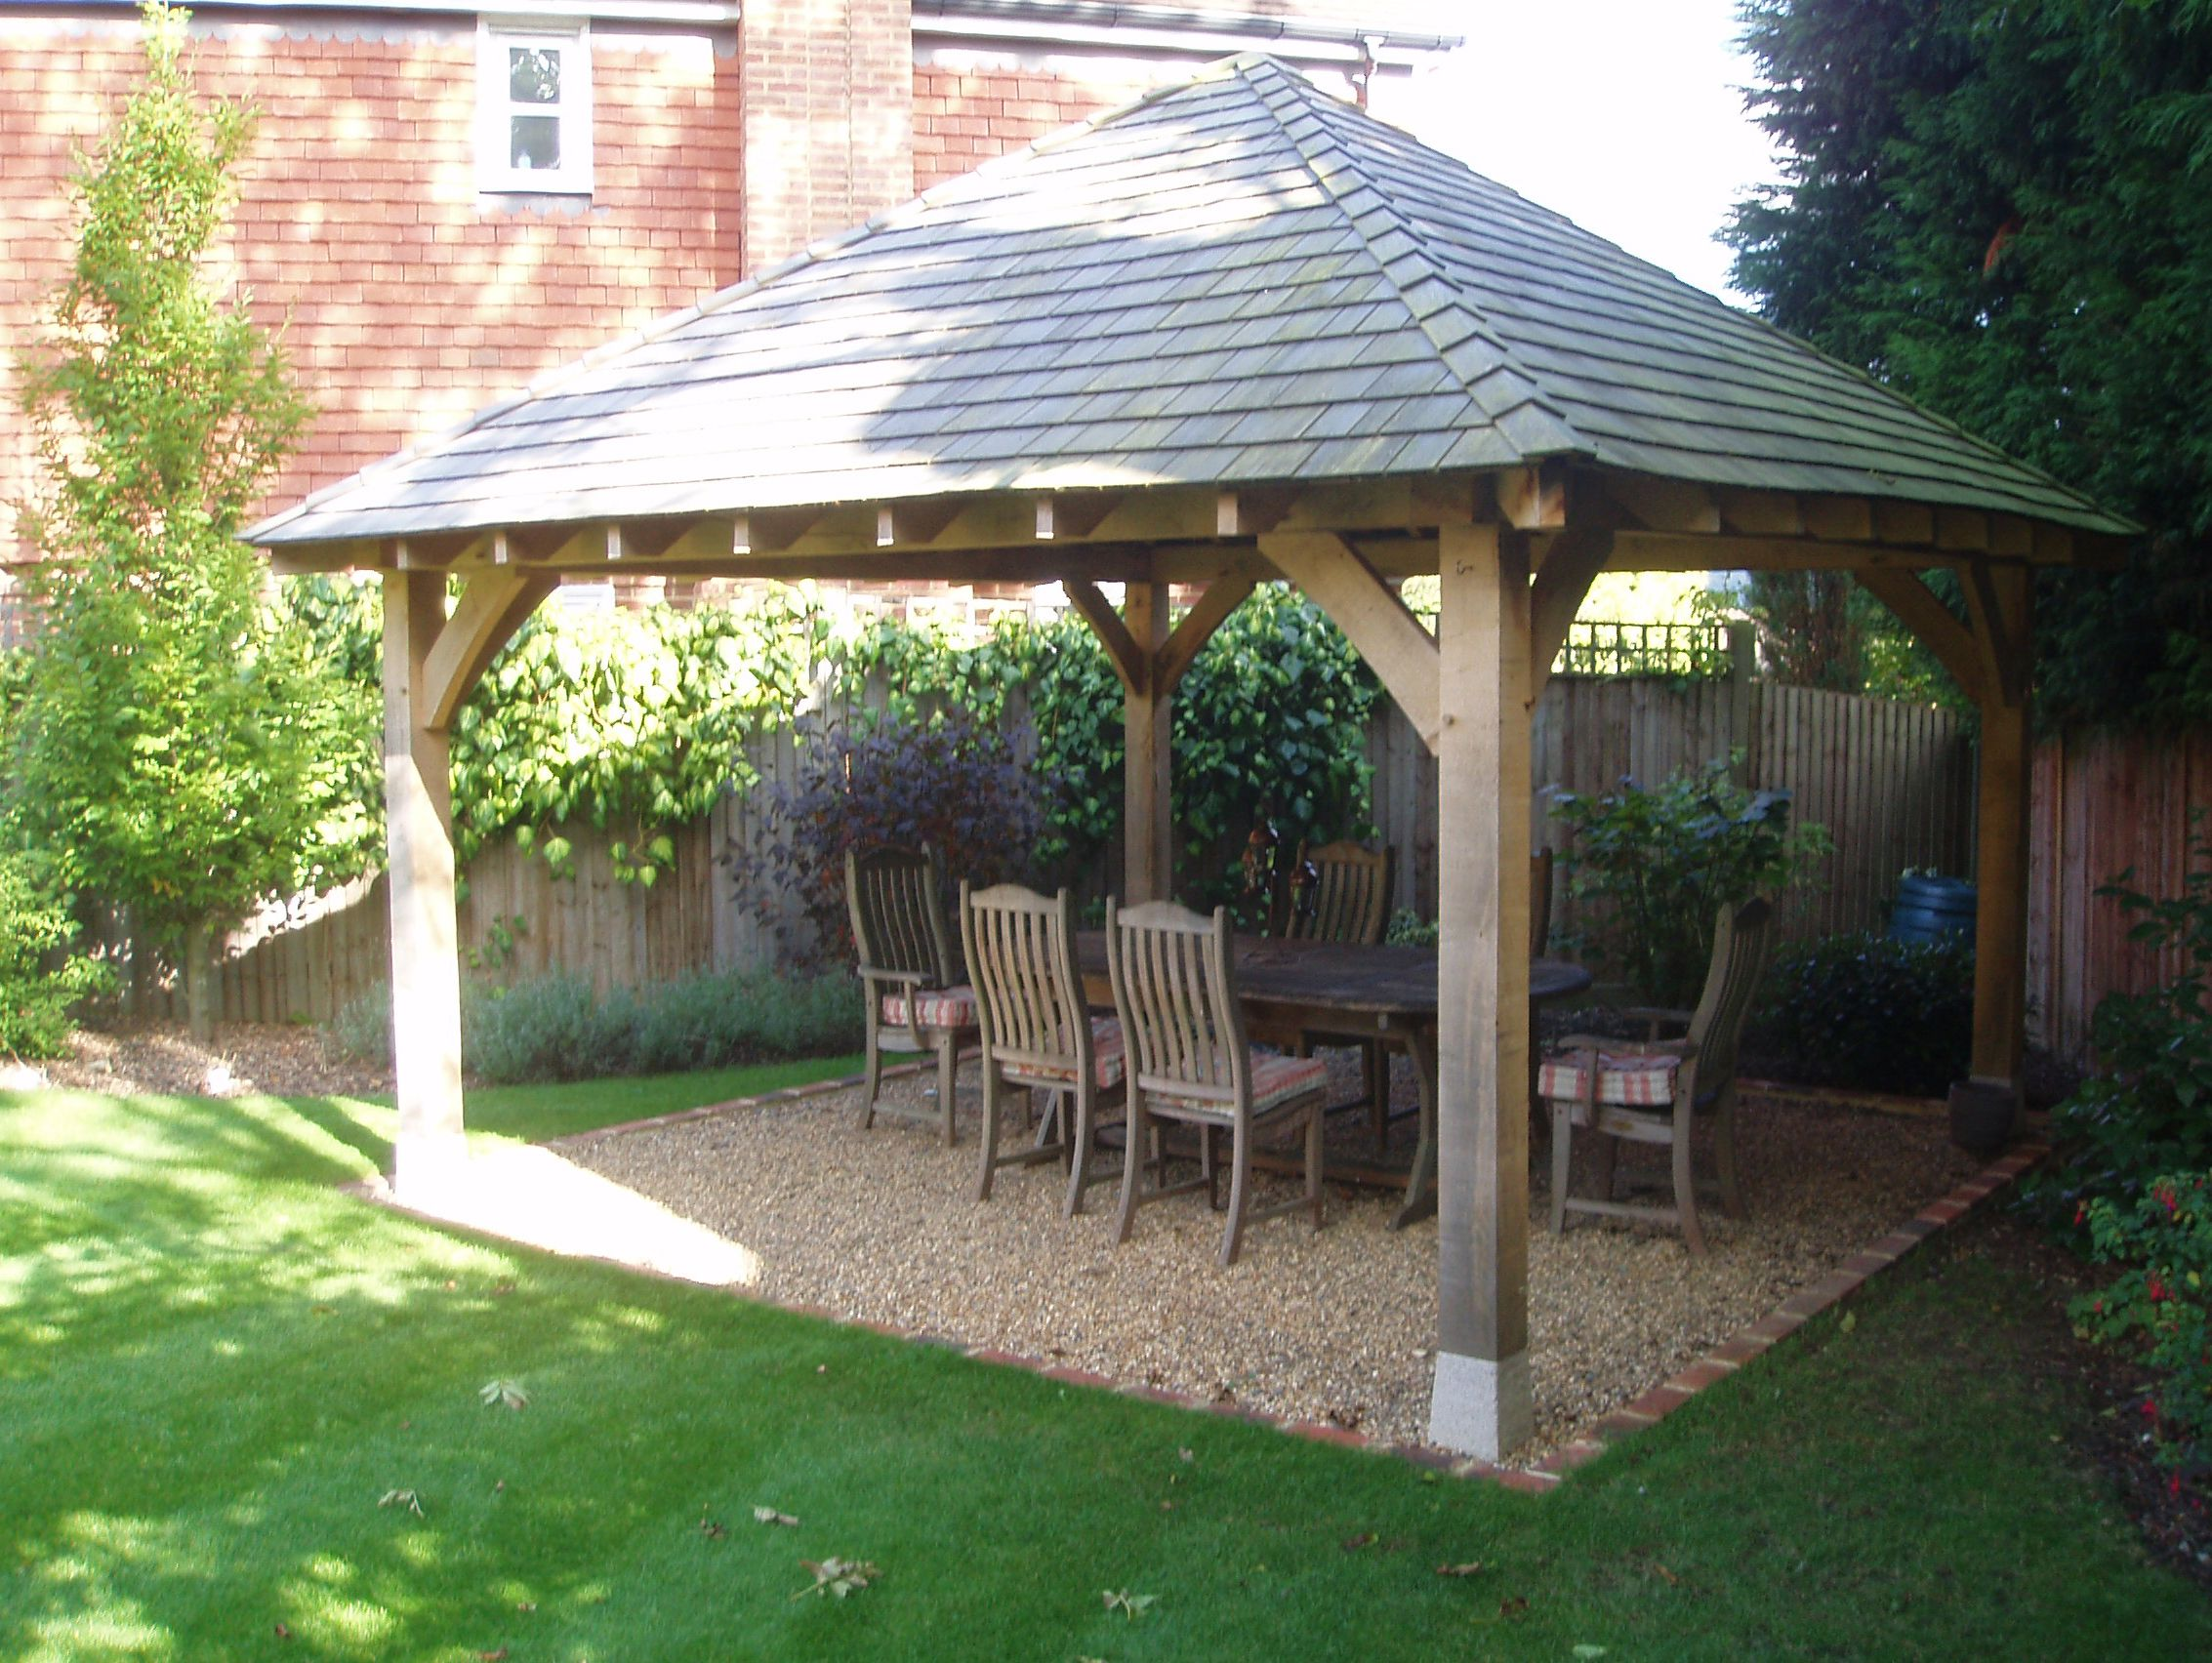 Charming The Bespoke Pergola Archway That Leads To A Hidden Garden Room Will Add  Zest And Interest